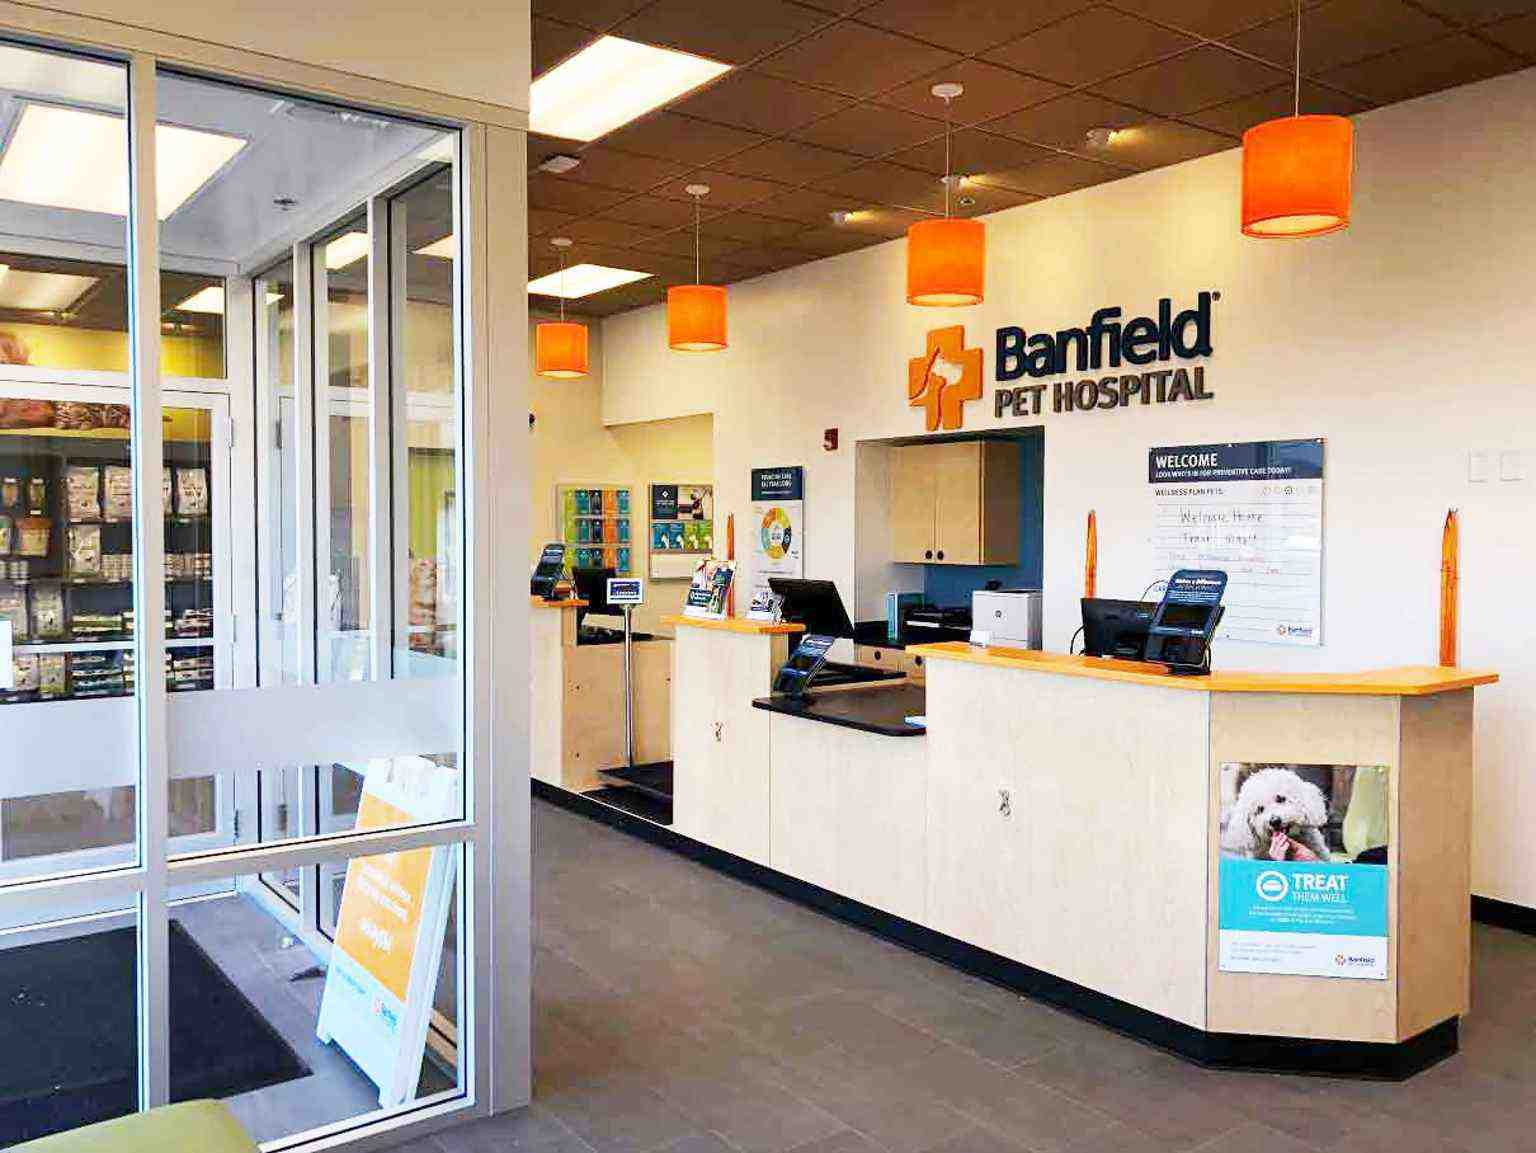 The front desk at the Banfield Pet Hospital